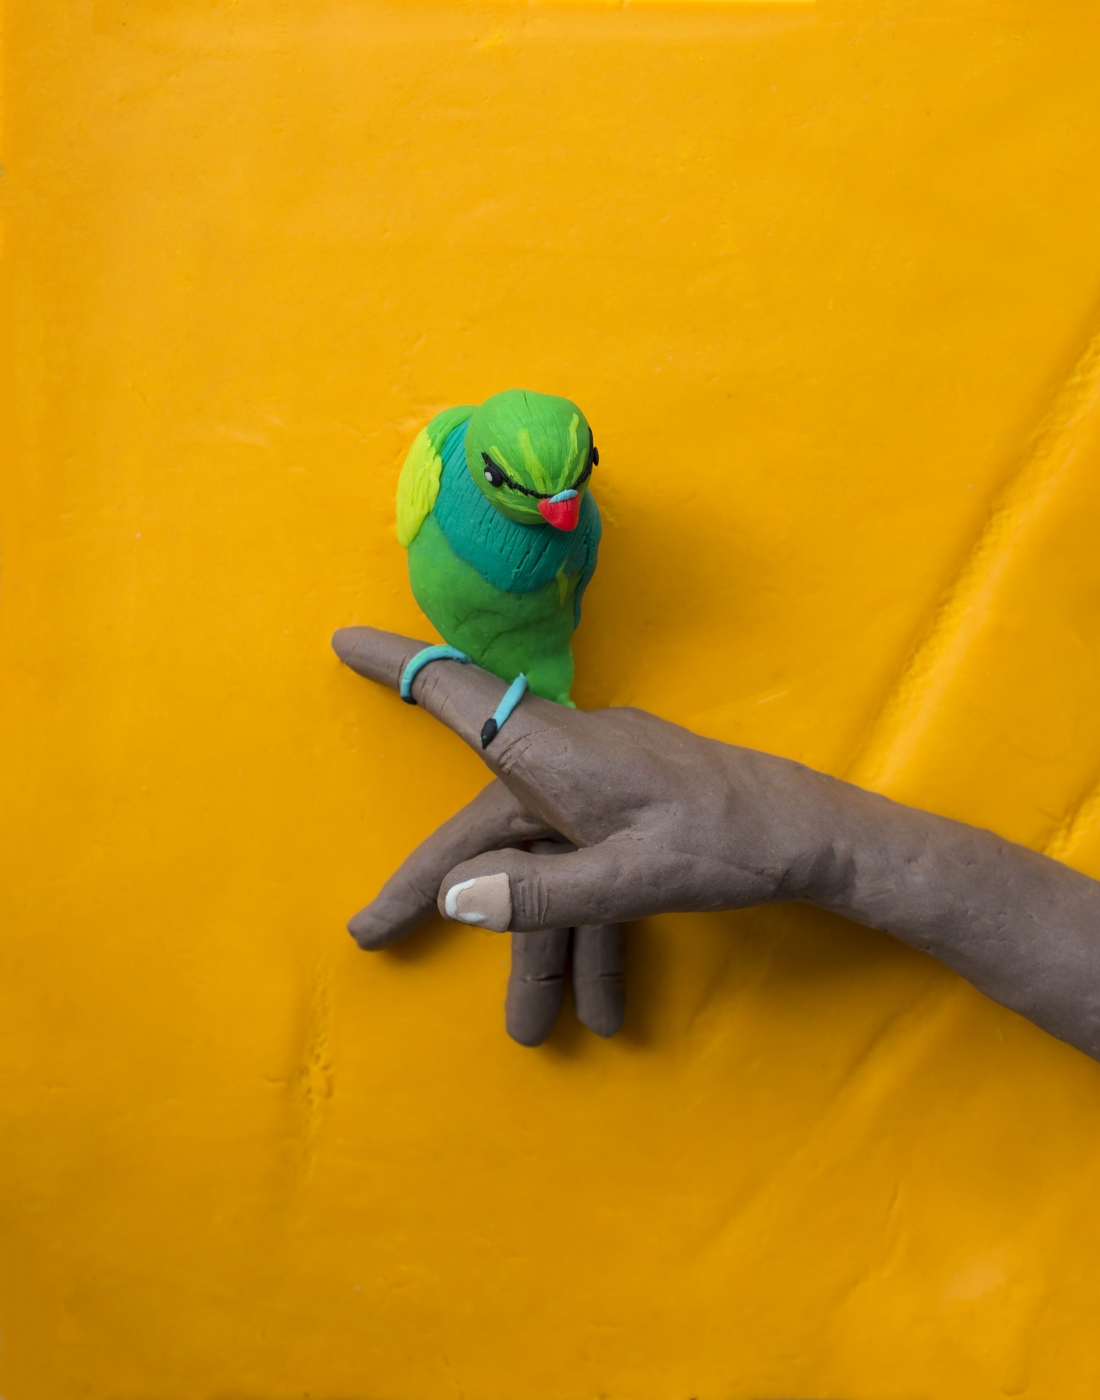 Original photograph: From 'The Lost Head & The Bird' by Sohrab Hura rendered in Play-Doh © Eleanor Macnair